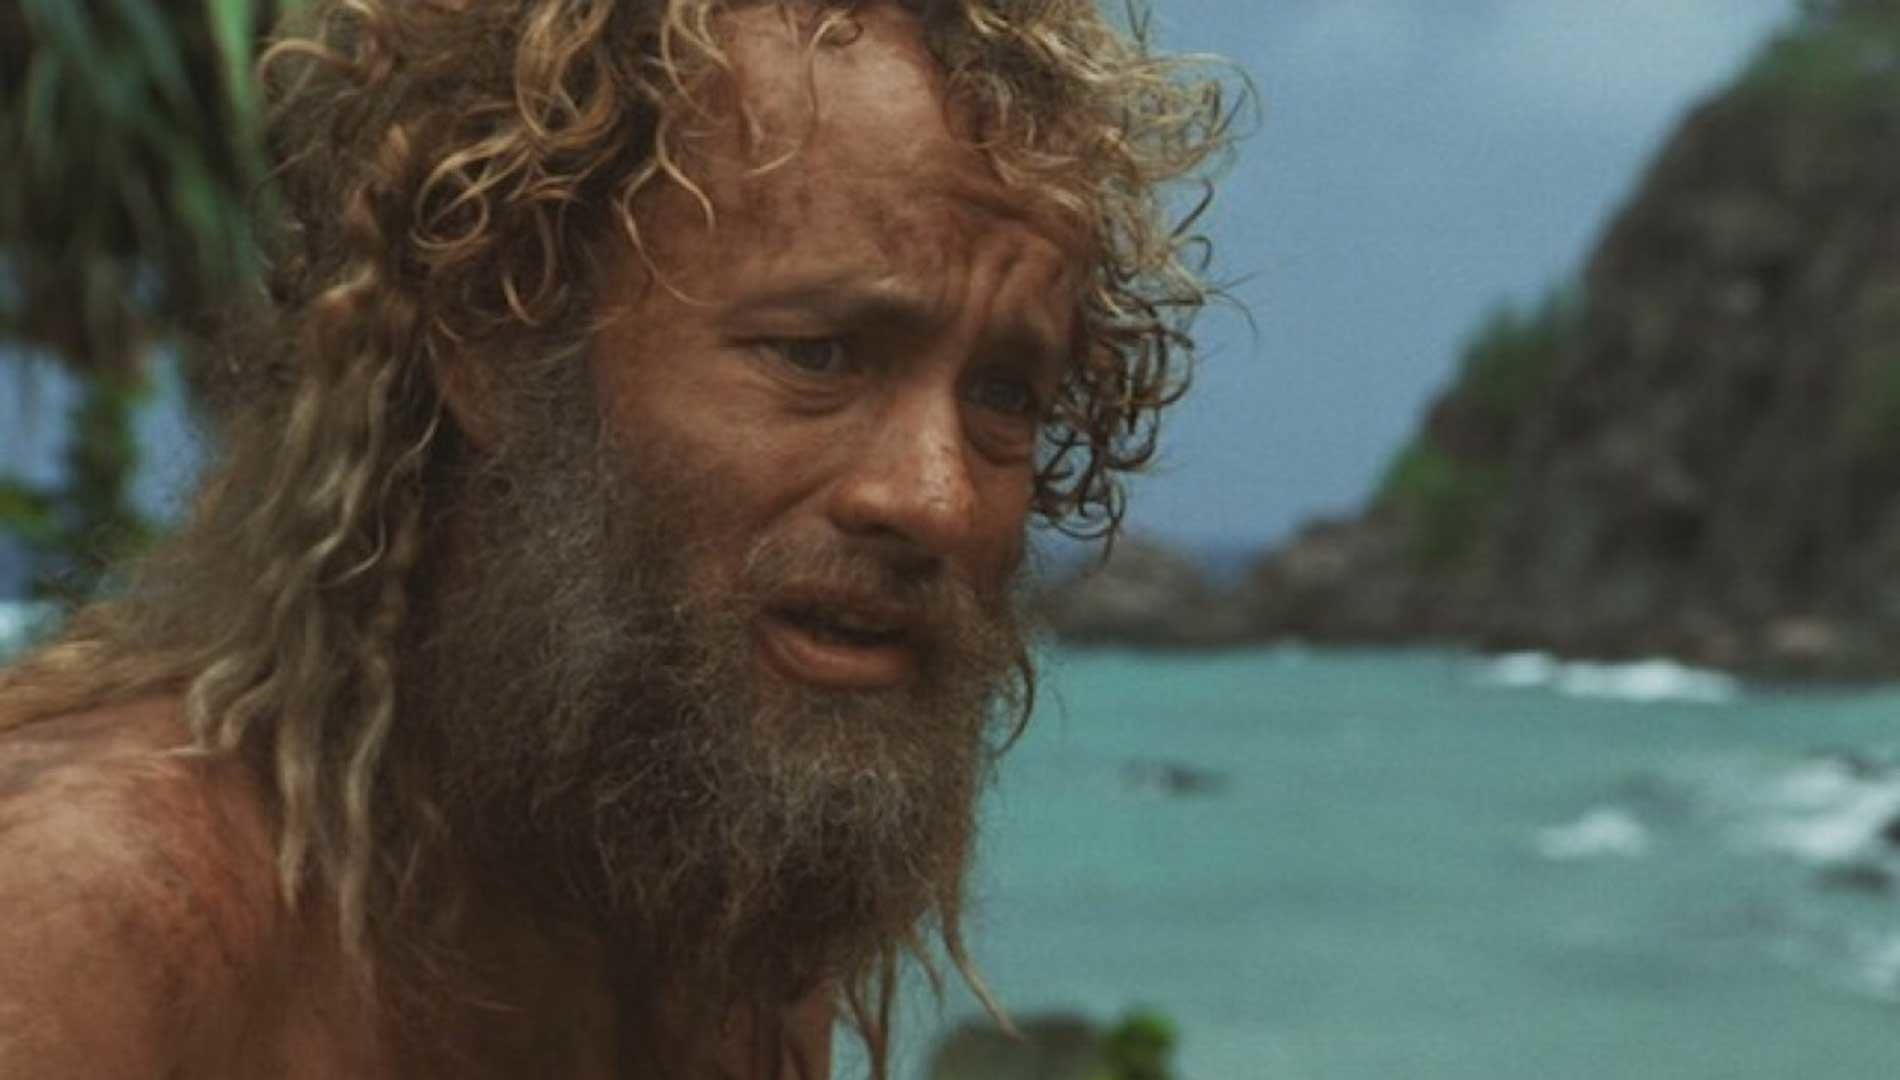 Modern days Robinson Crusoe in 'Cast Away' movie (2000)